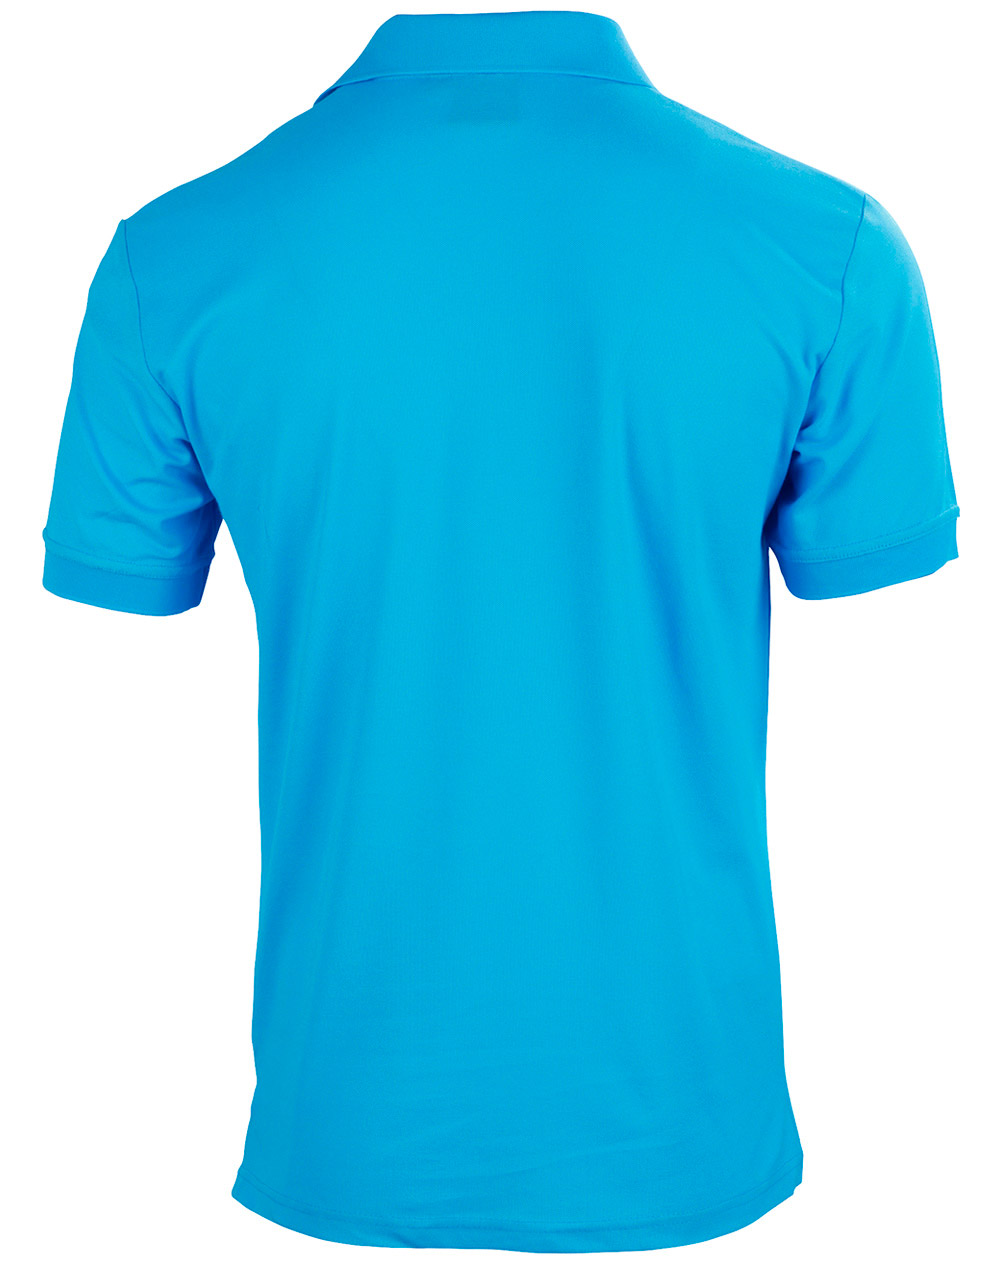 https://s3-ap-southeast-1.amazonaws.com/ws-imgs/POLOSHIRTS/PS63_AquaBlue_Back.jpg